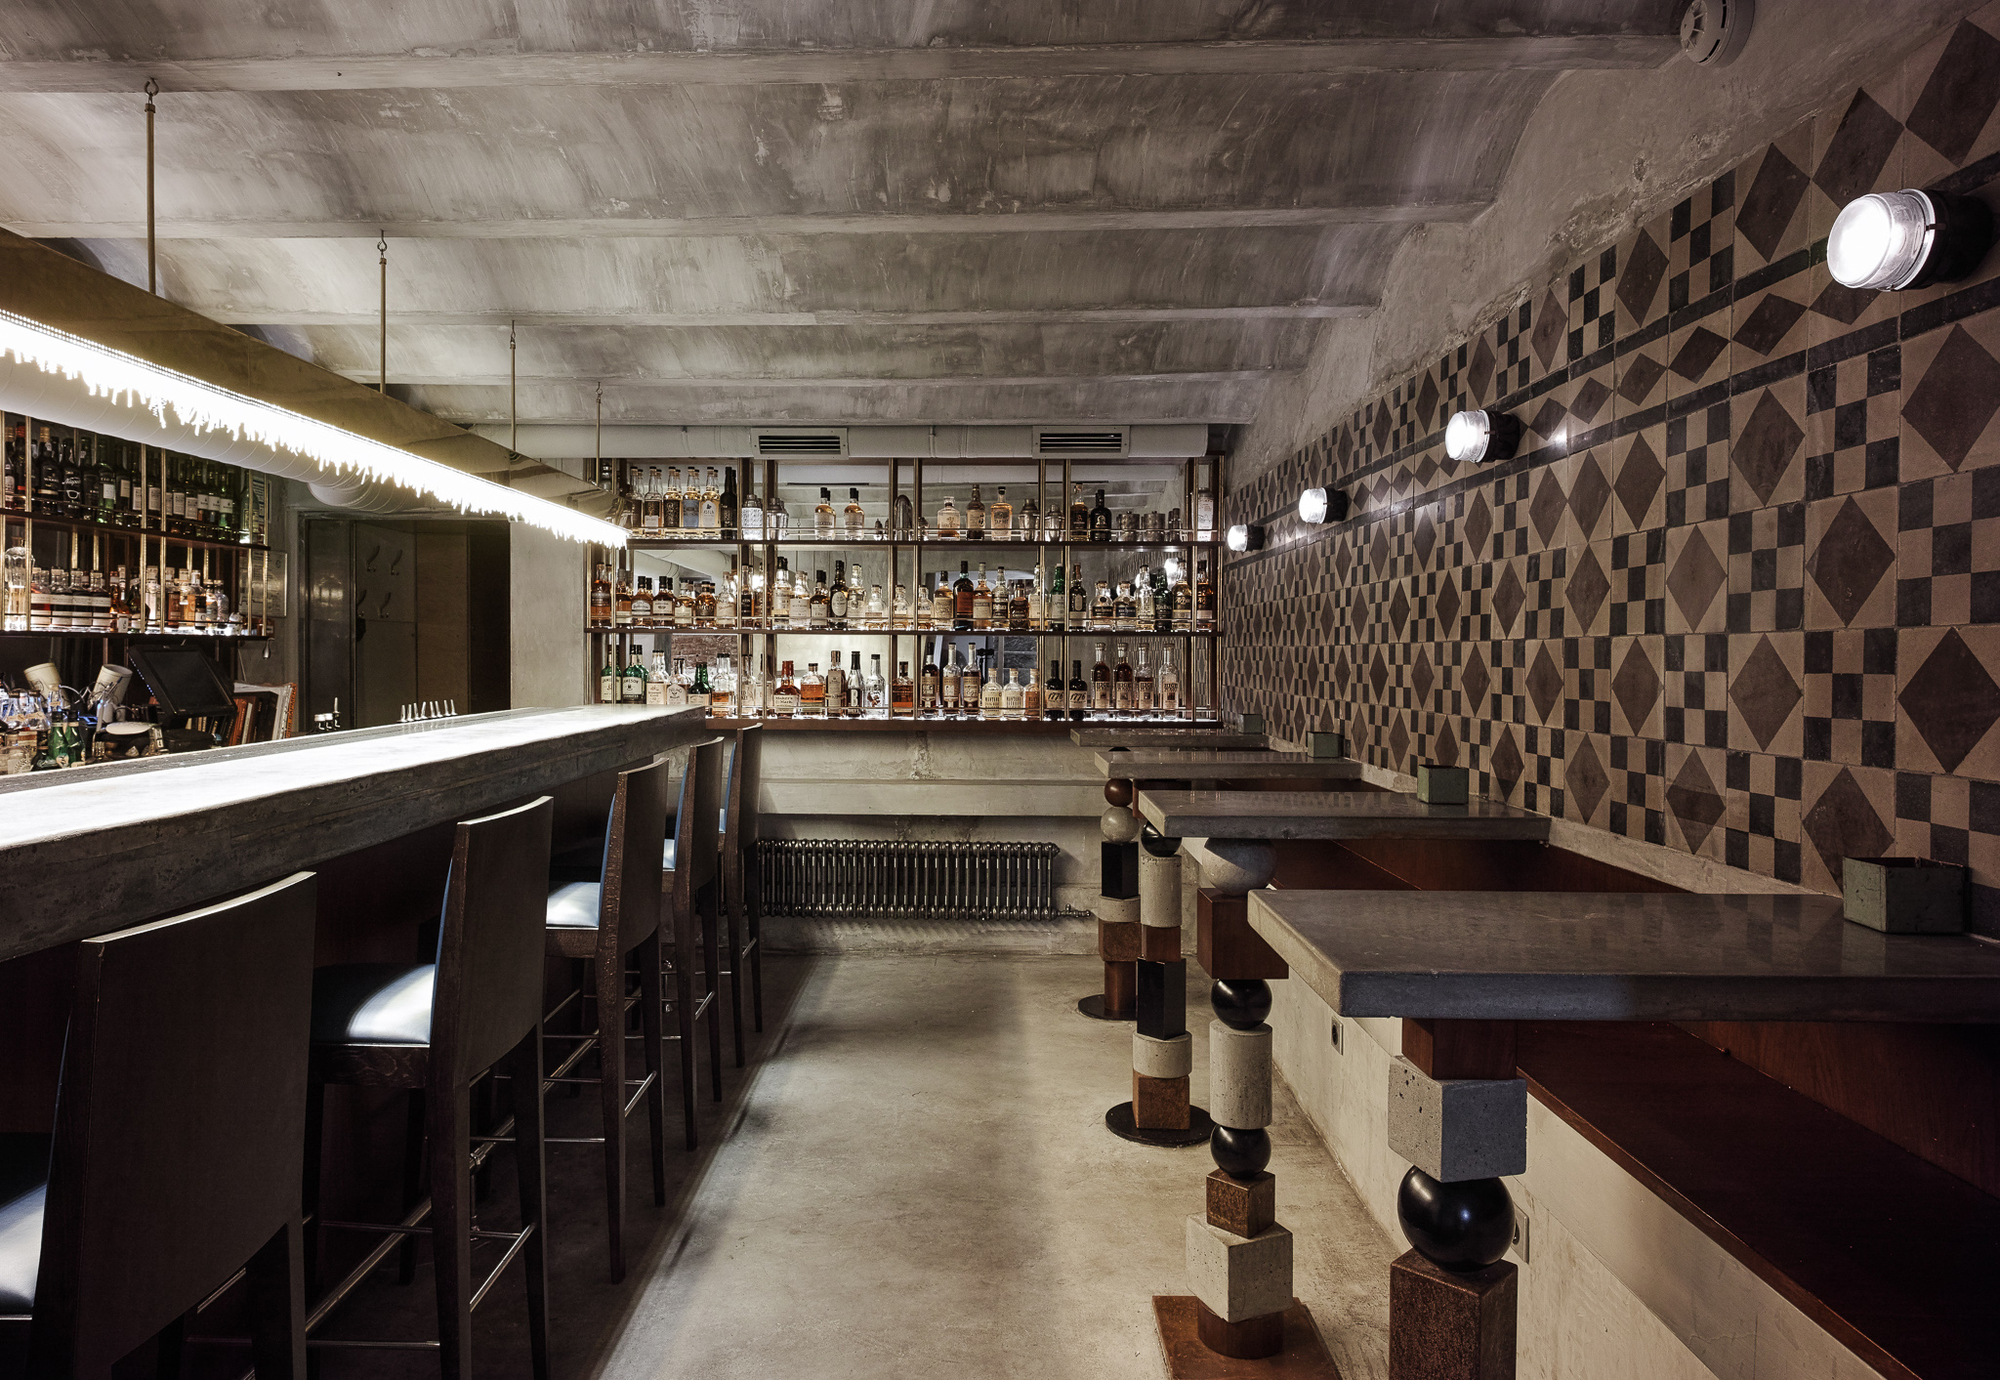 Bar architecture and design | ArchDaily